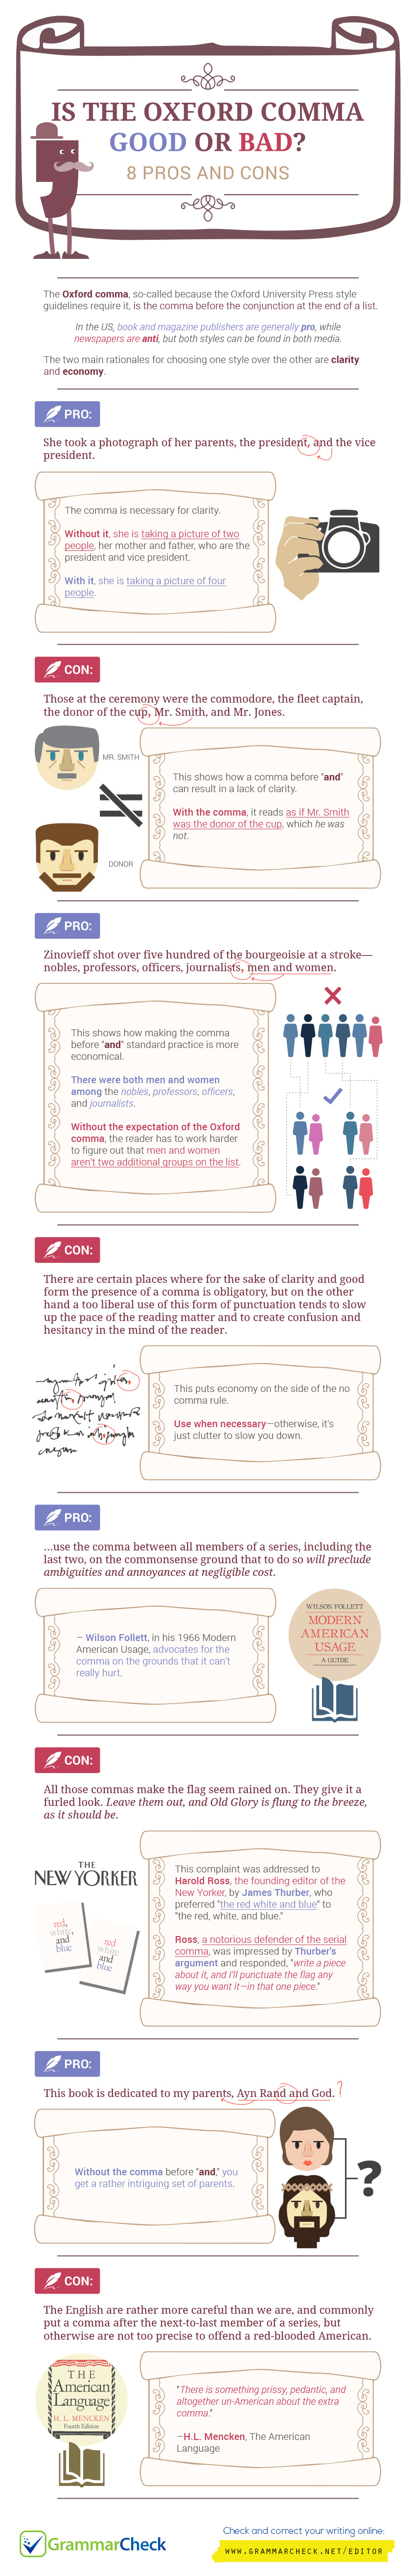 Oxford Comma Good or Bad? 8 Pros and Cons (Infographic)